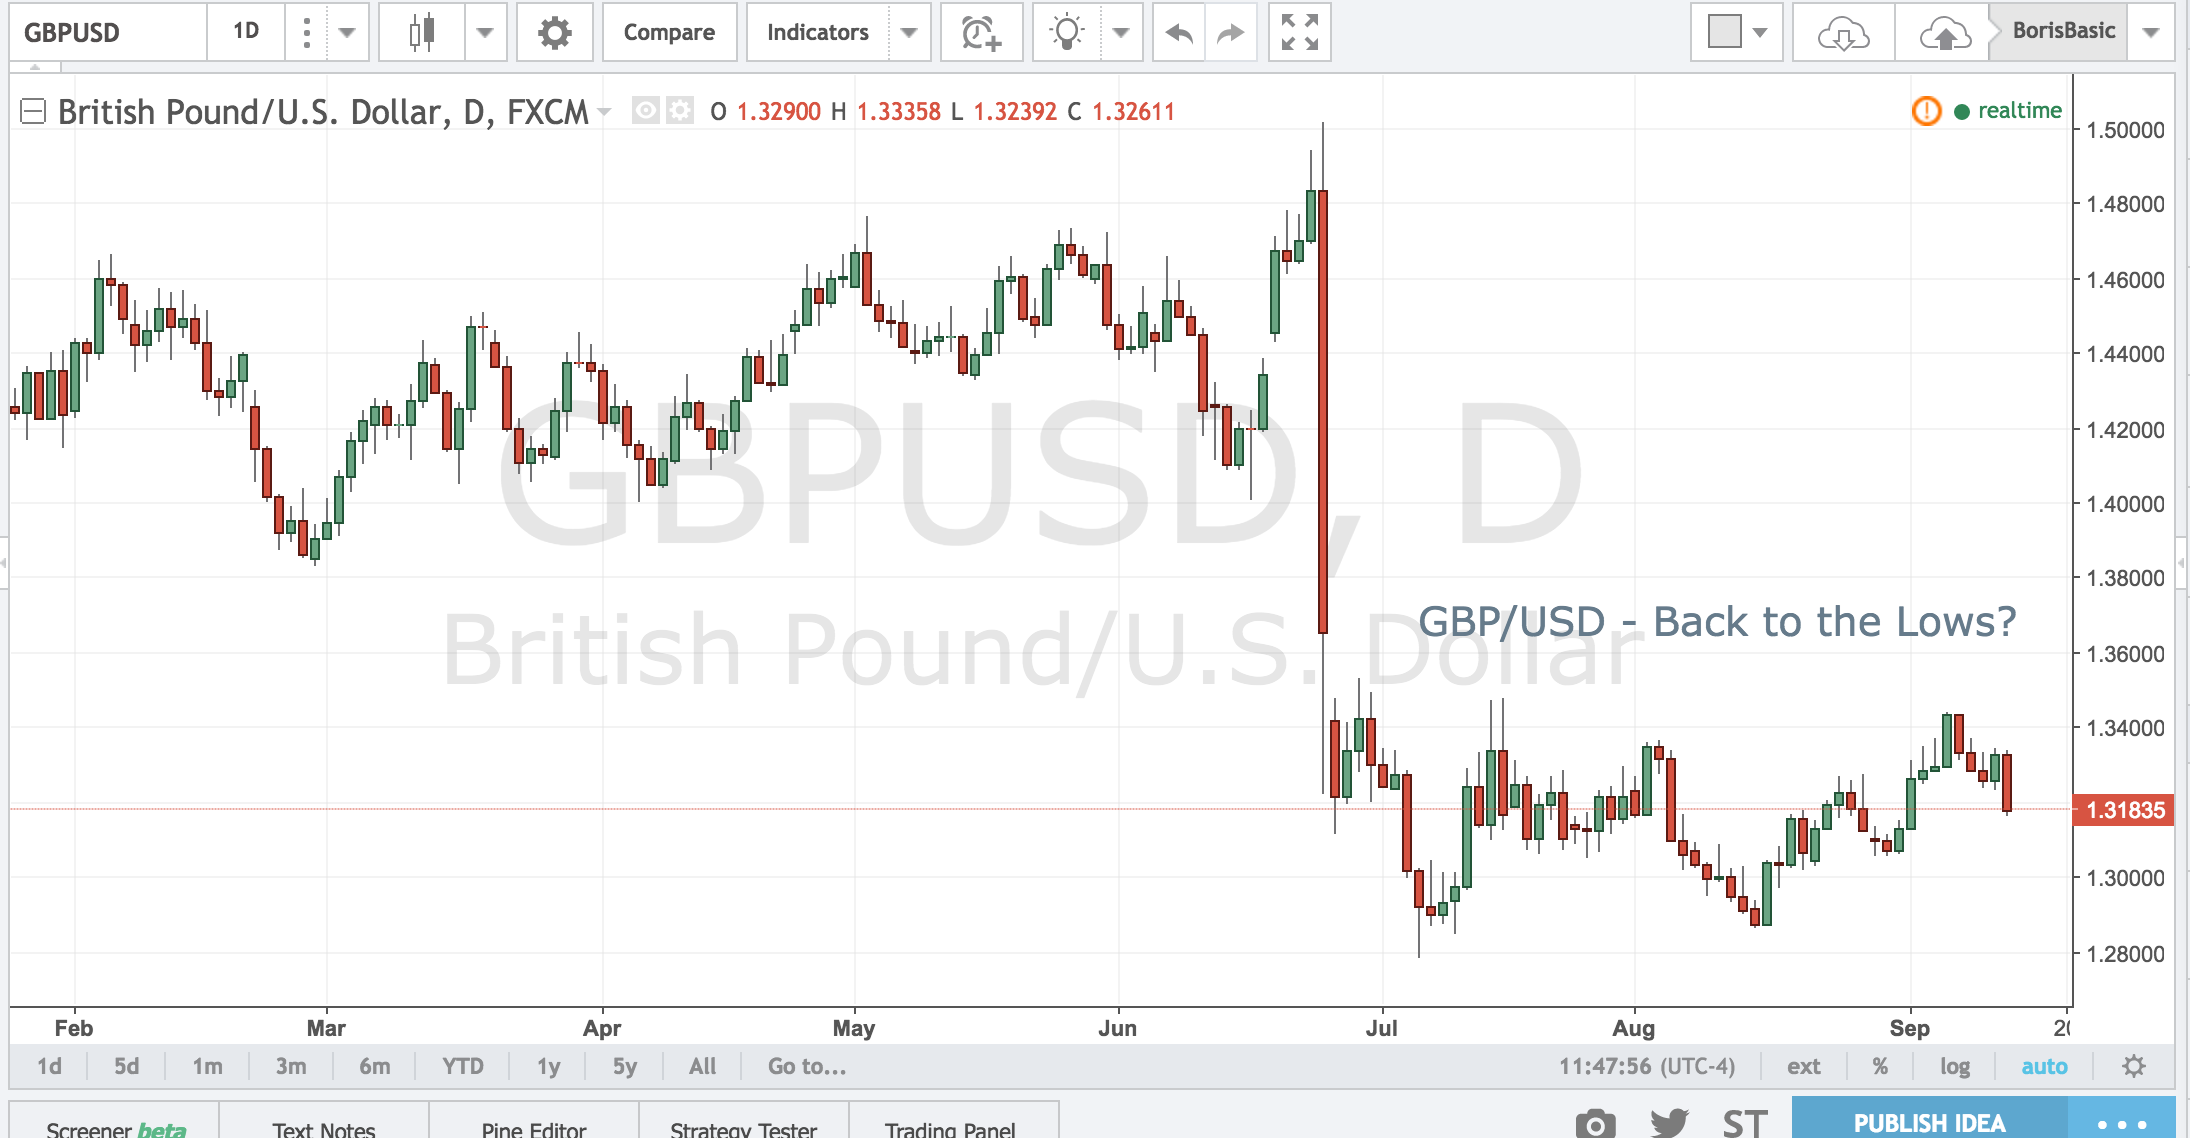 GBP/USD – Back to the Lows?